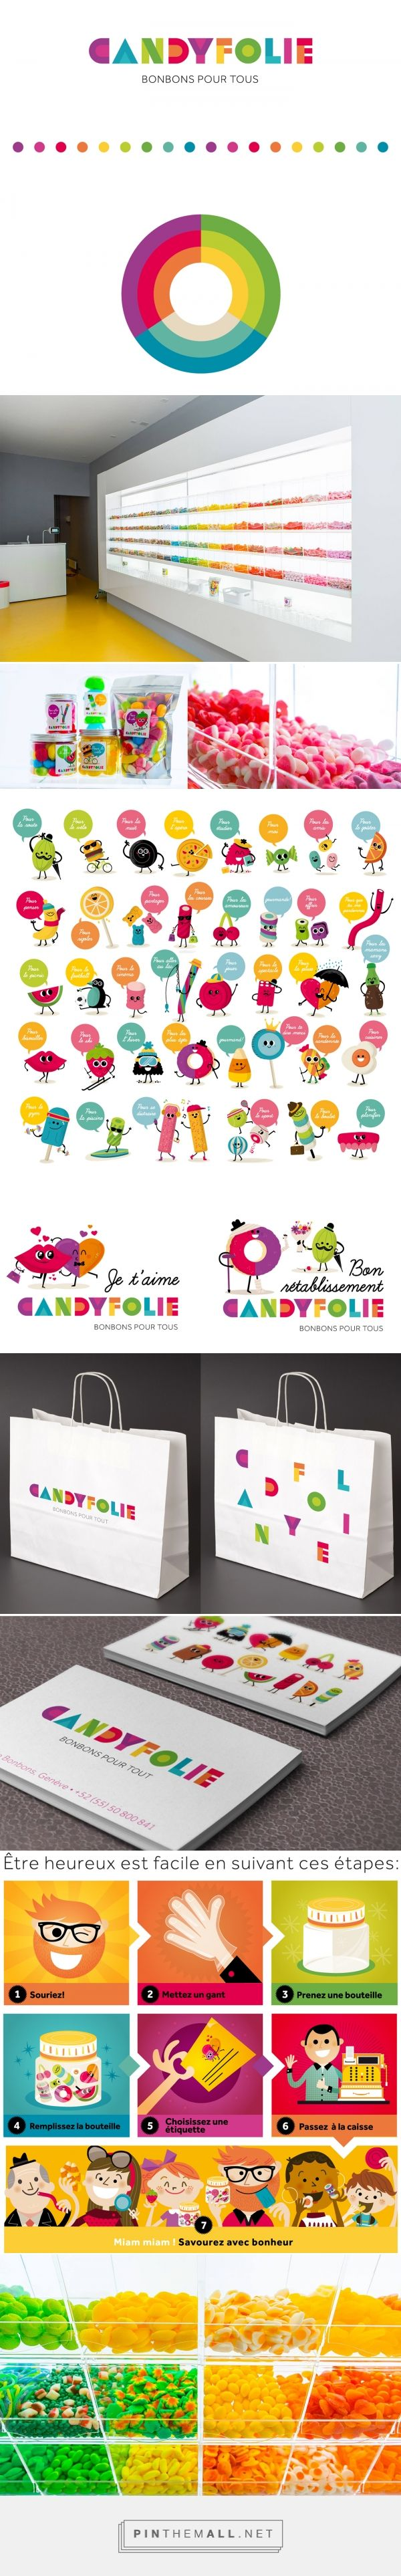 Candyfolie packaging branding on Behance curated by Packaging Diva PD.  Candyfoile is a candy shop in Geneva. The brand is to create a candy for all ages and situations colorful, simple, dinamic and funny.